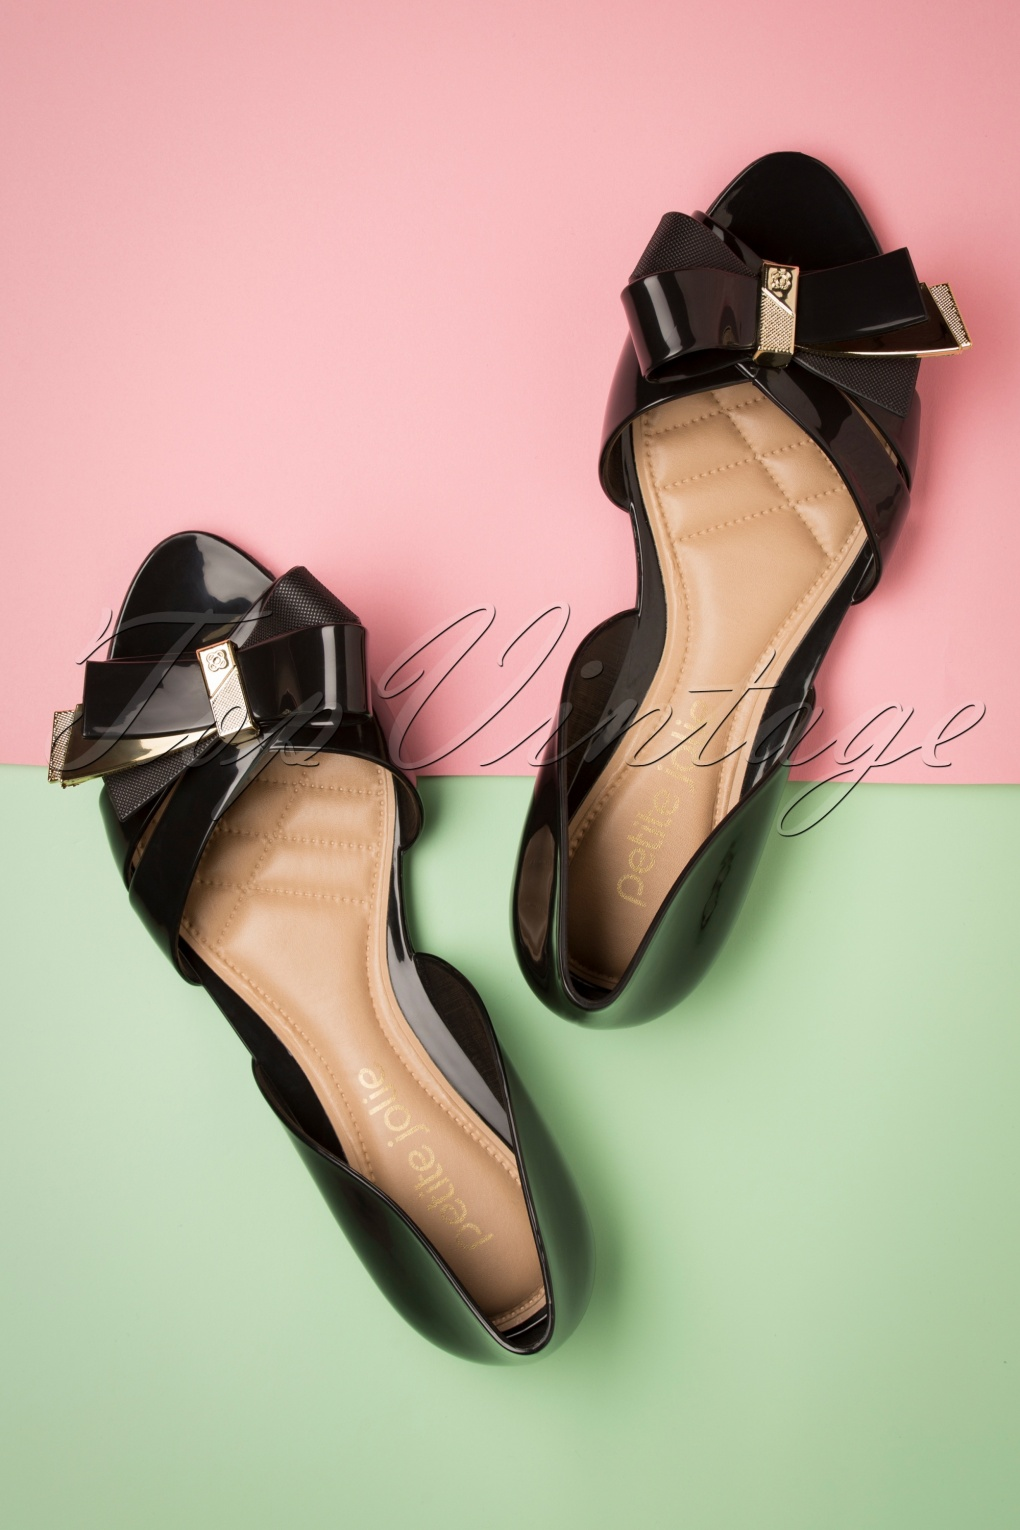 Retro Vintage Flats and Low Heel Shoes 60s Abby Bow Peeptoe Flats in Preto Black �35.00 AT vintagedancer.com